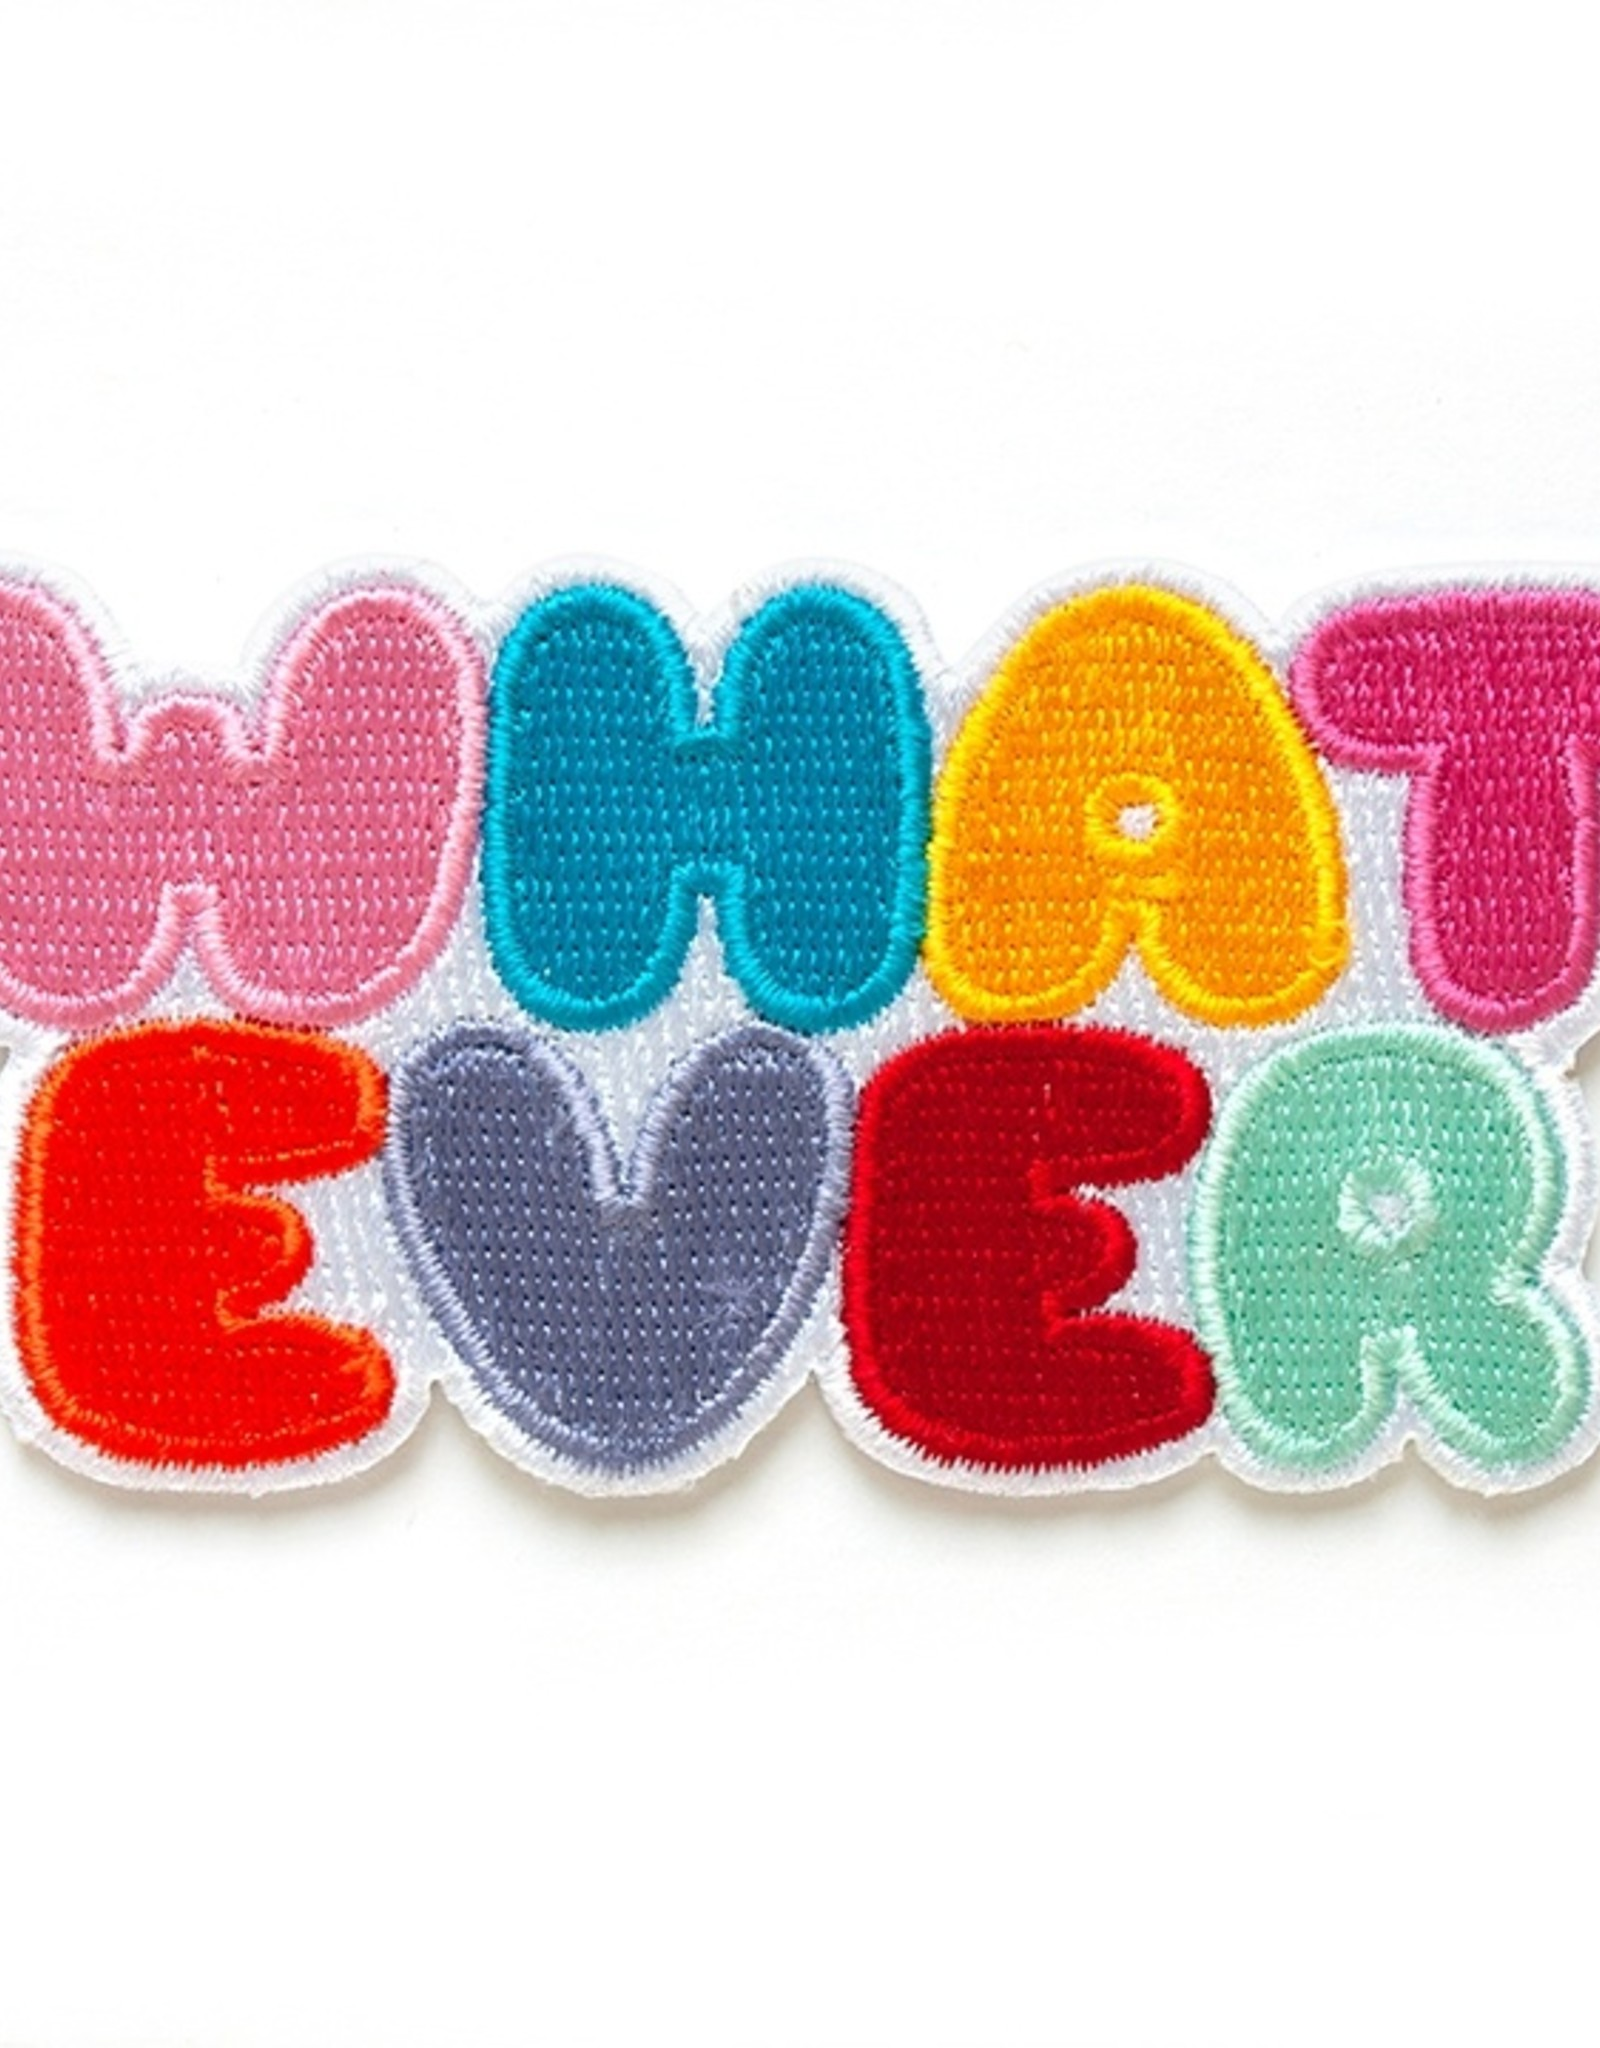 Smarty Pants Paper Company Patch - Whatever